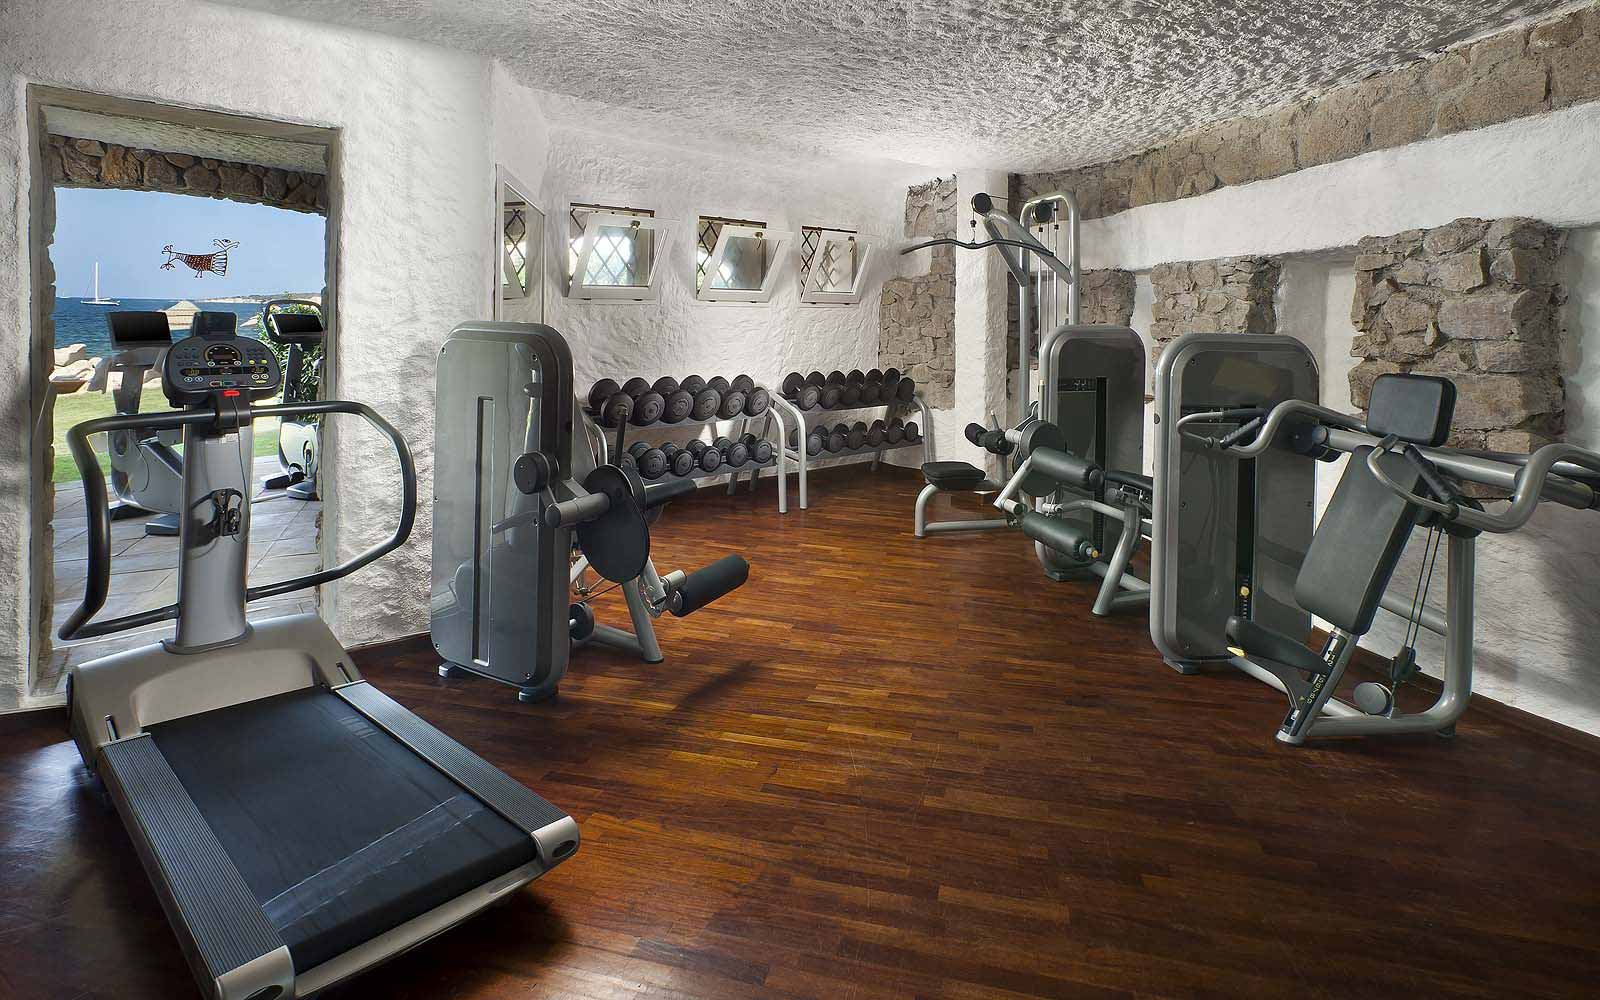 Fitness Centre at the Hotel Pitrizza